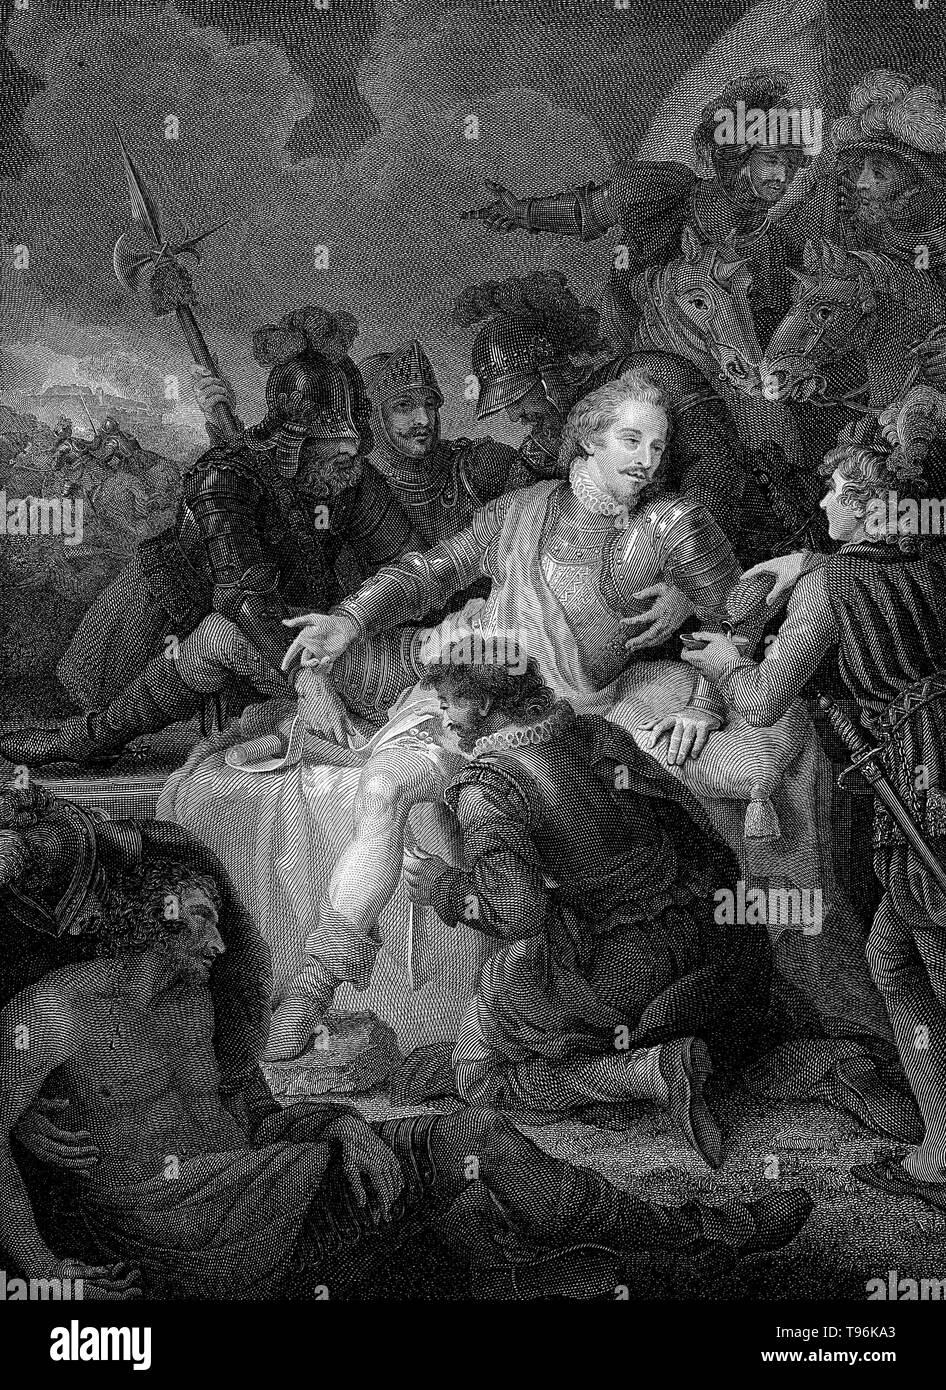 The death of Sir Philip Sidney at the battle of Zutphen. Sir Philip Sidney (November 30, 1554 - October 17, 1586) was an English poet, courtier, scholar, and soldier, who is remembered as one of the most prominent figures of the Elizabethan age. In 1572, at the age of 18, he was elected to Parliament as a Member of Parliament for Shrewsbury and in the same year travelled to France as part of the embassy to negotiate a marriage between Elizabeth I and the Duc D'Alencon. - Stock Image